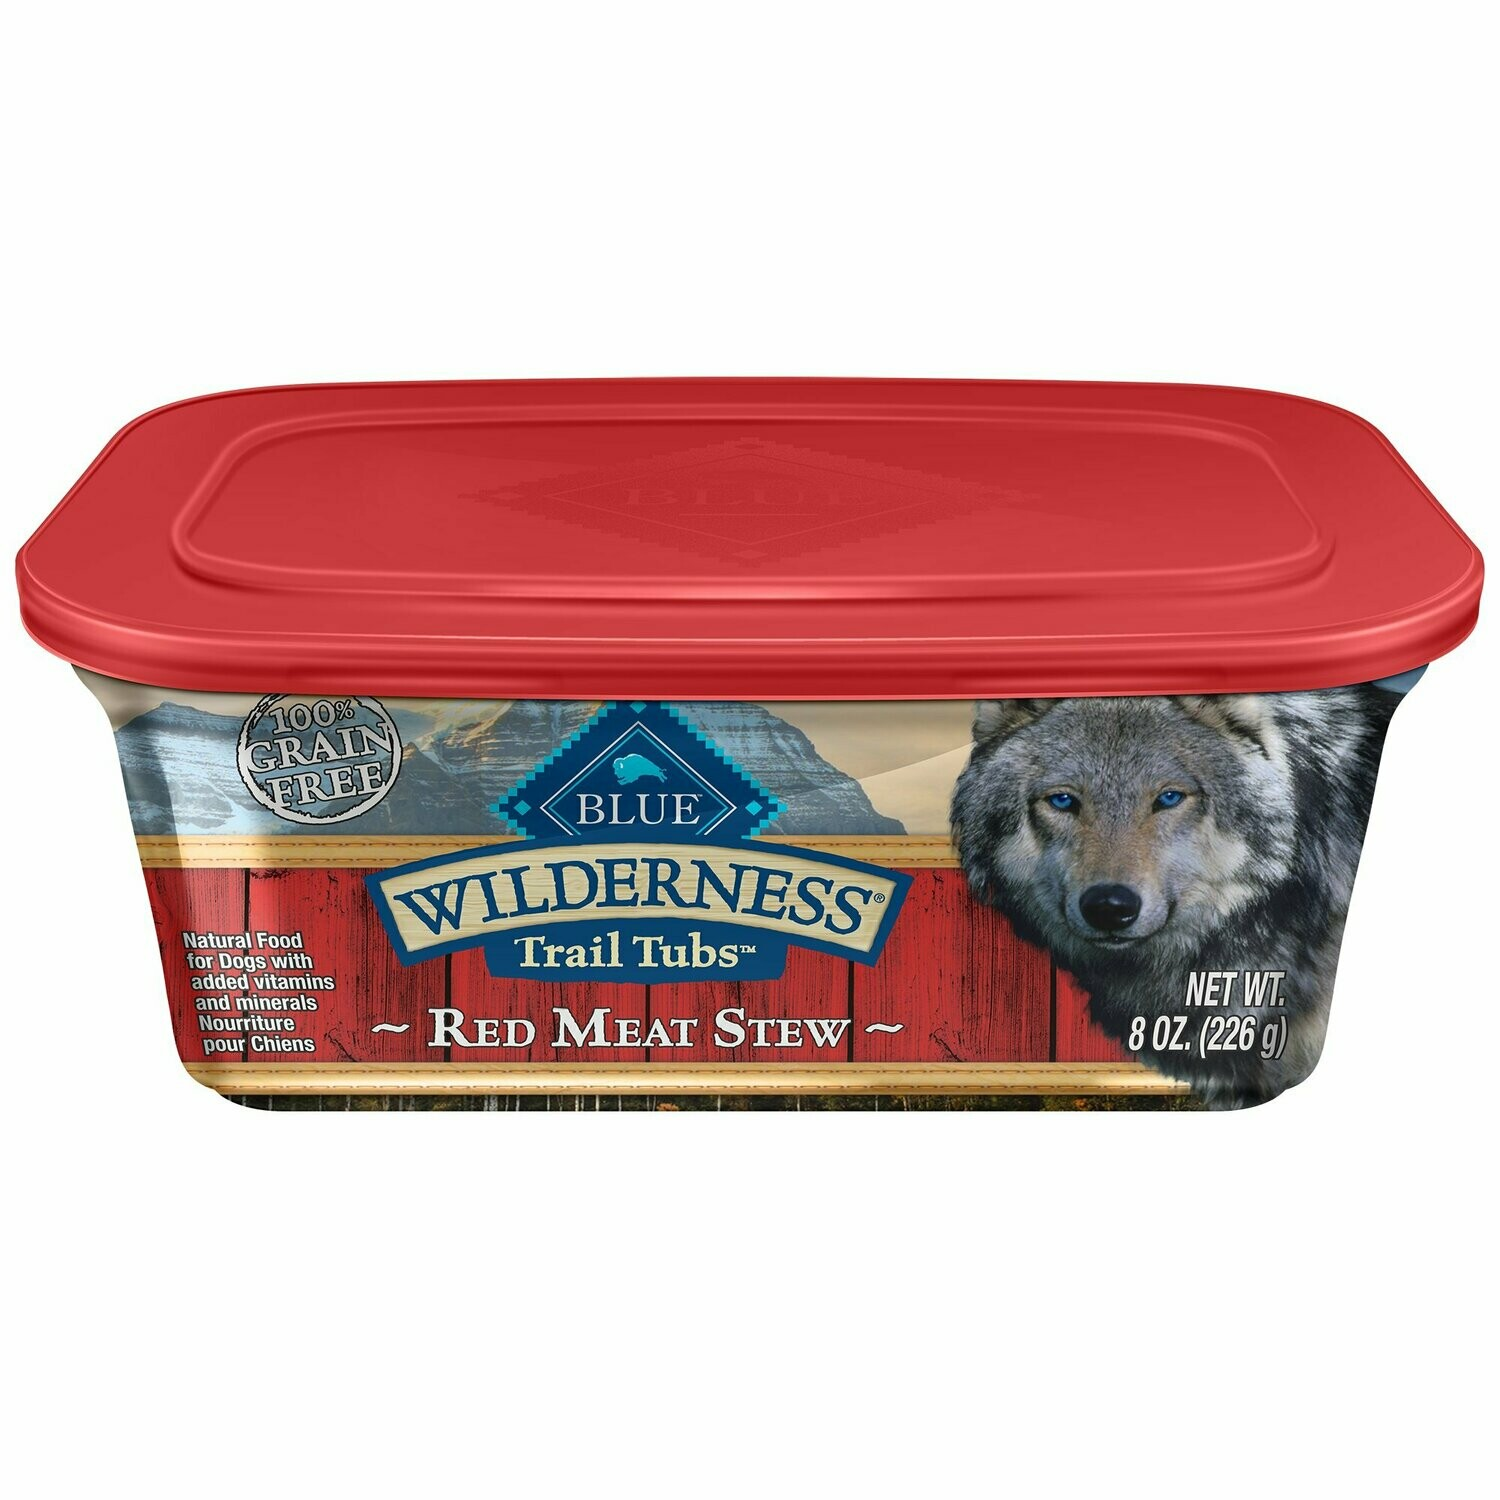 Blue Buffalo Wilderness Trail Tubs Grain Free Red Meat Stew Dog Food Tray 8 oz 8 count (6/19)